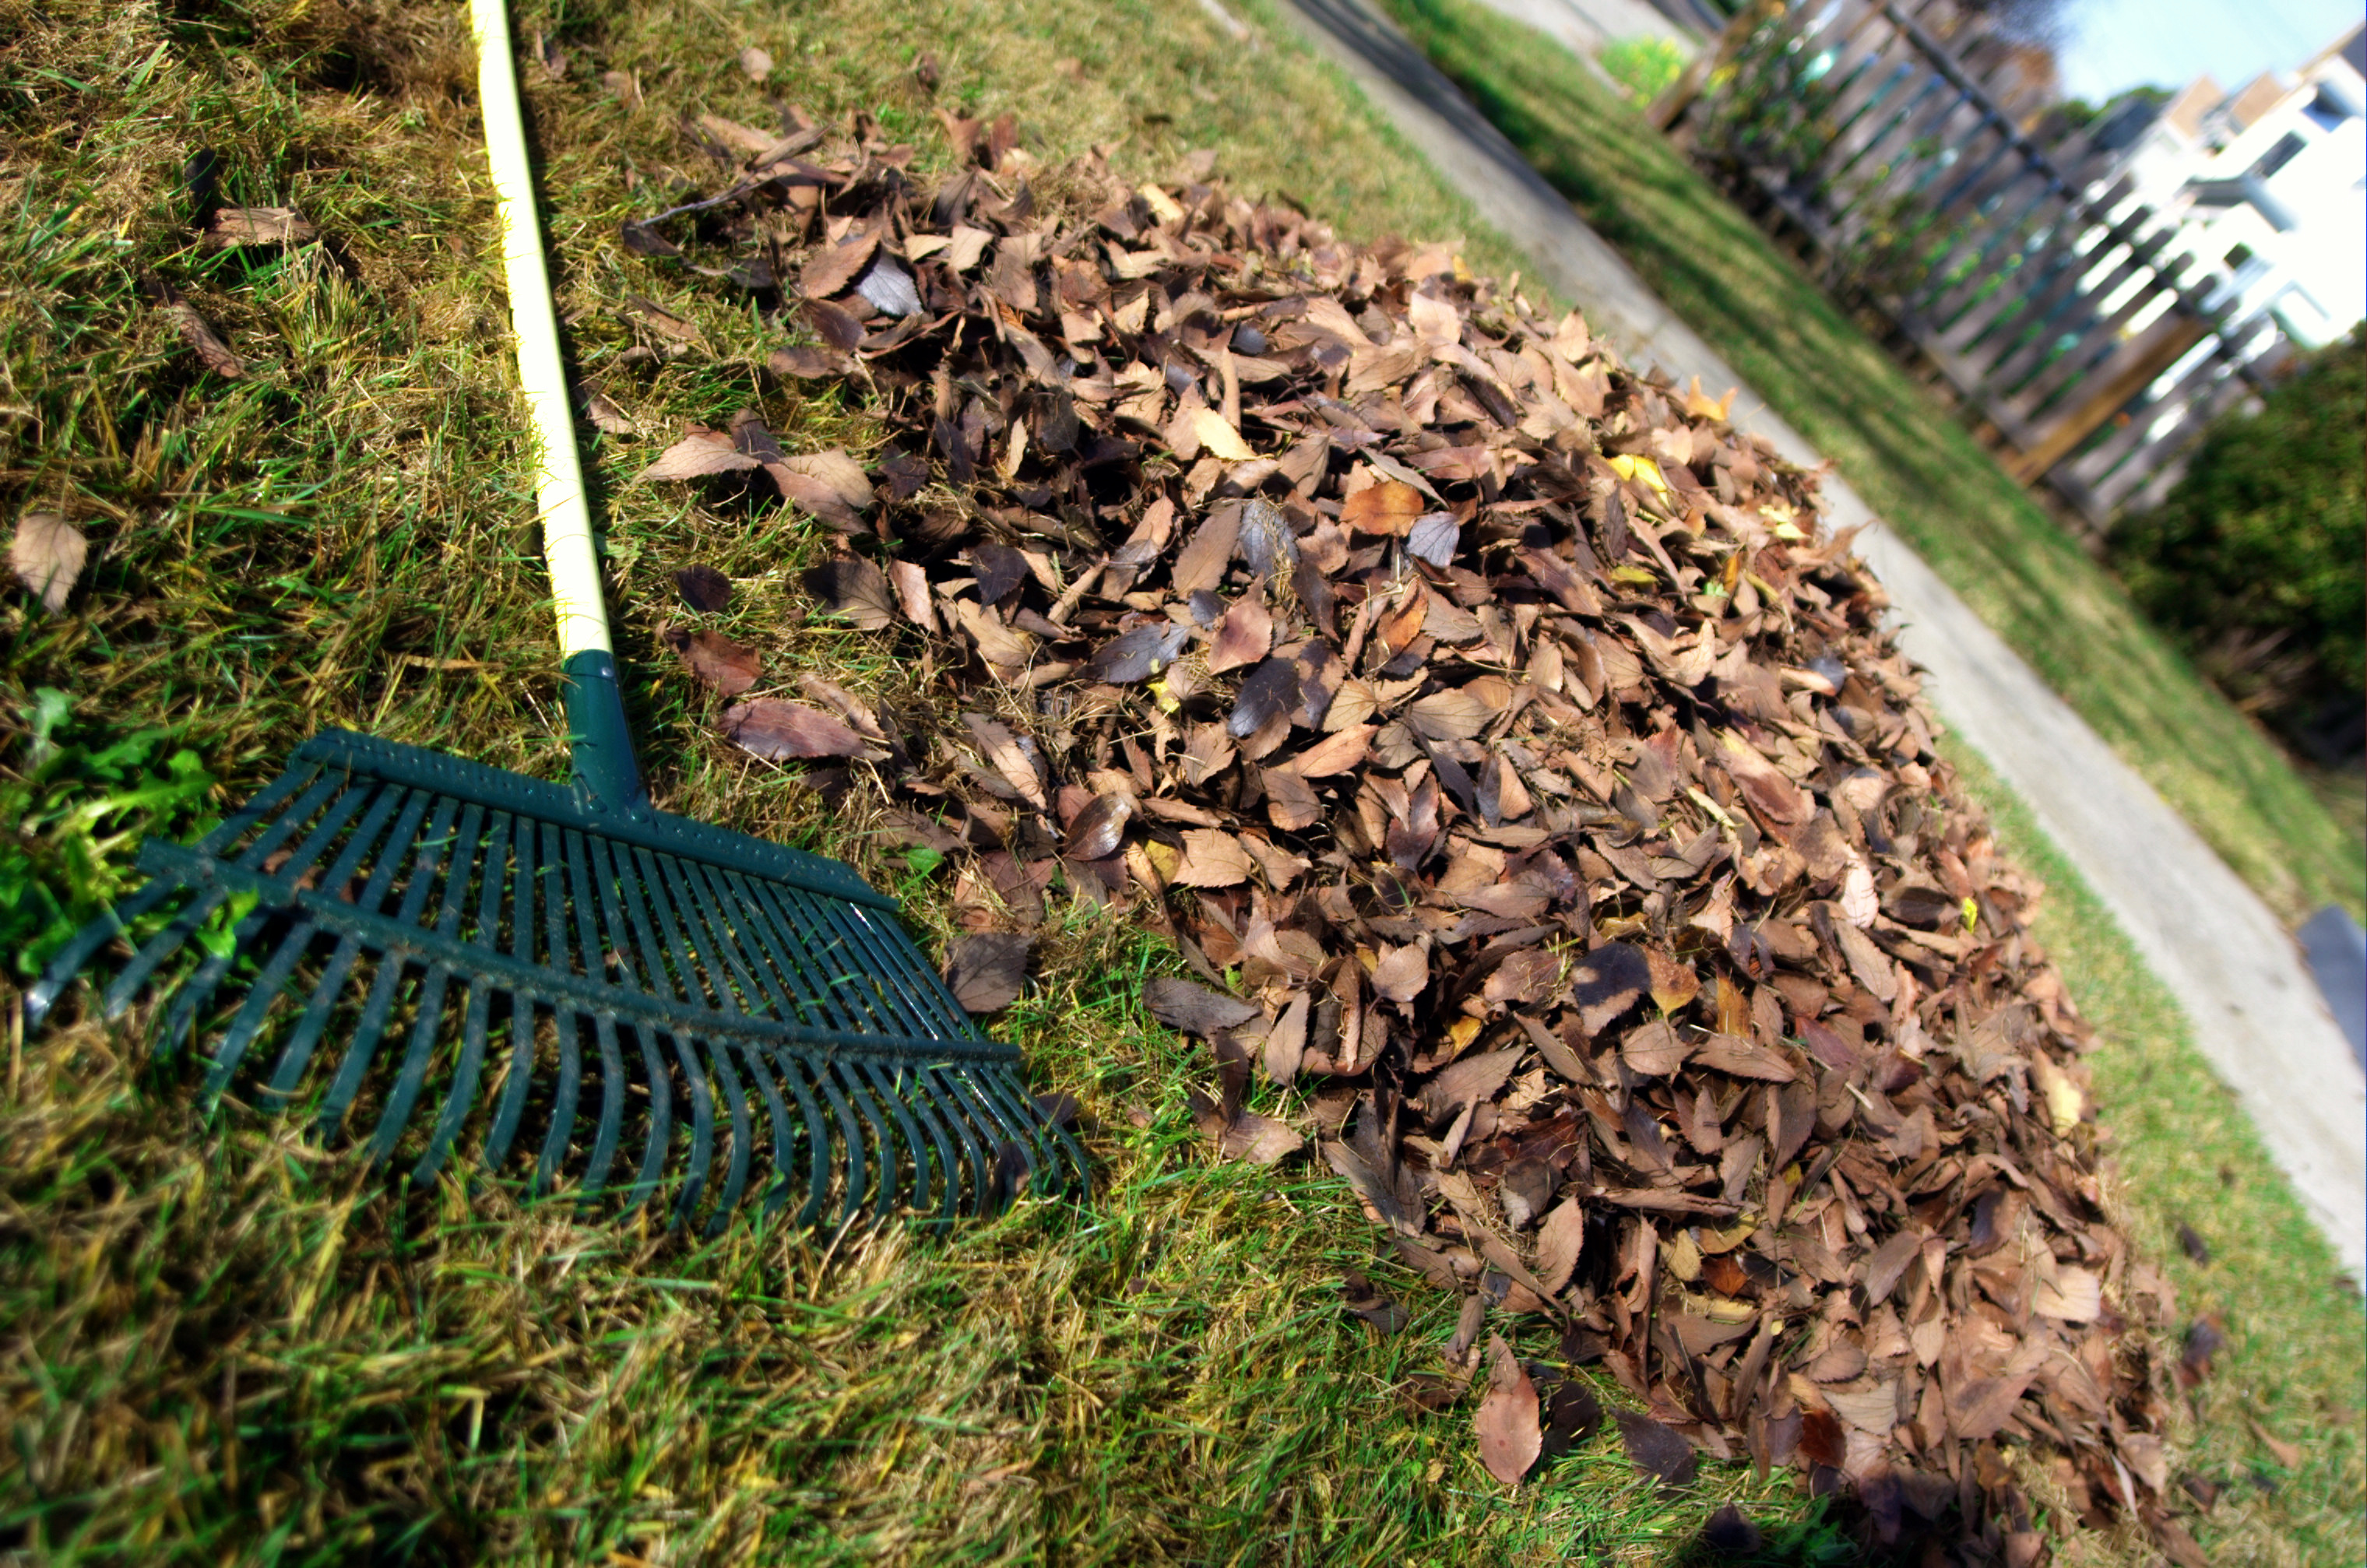 Don't Fall into a Bad Mood Over Yard Waste This Time of Year